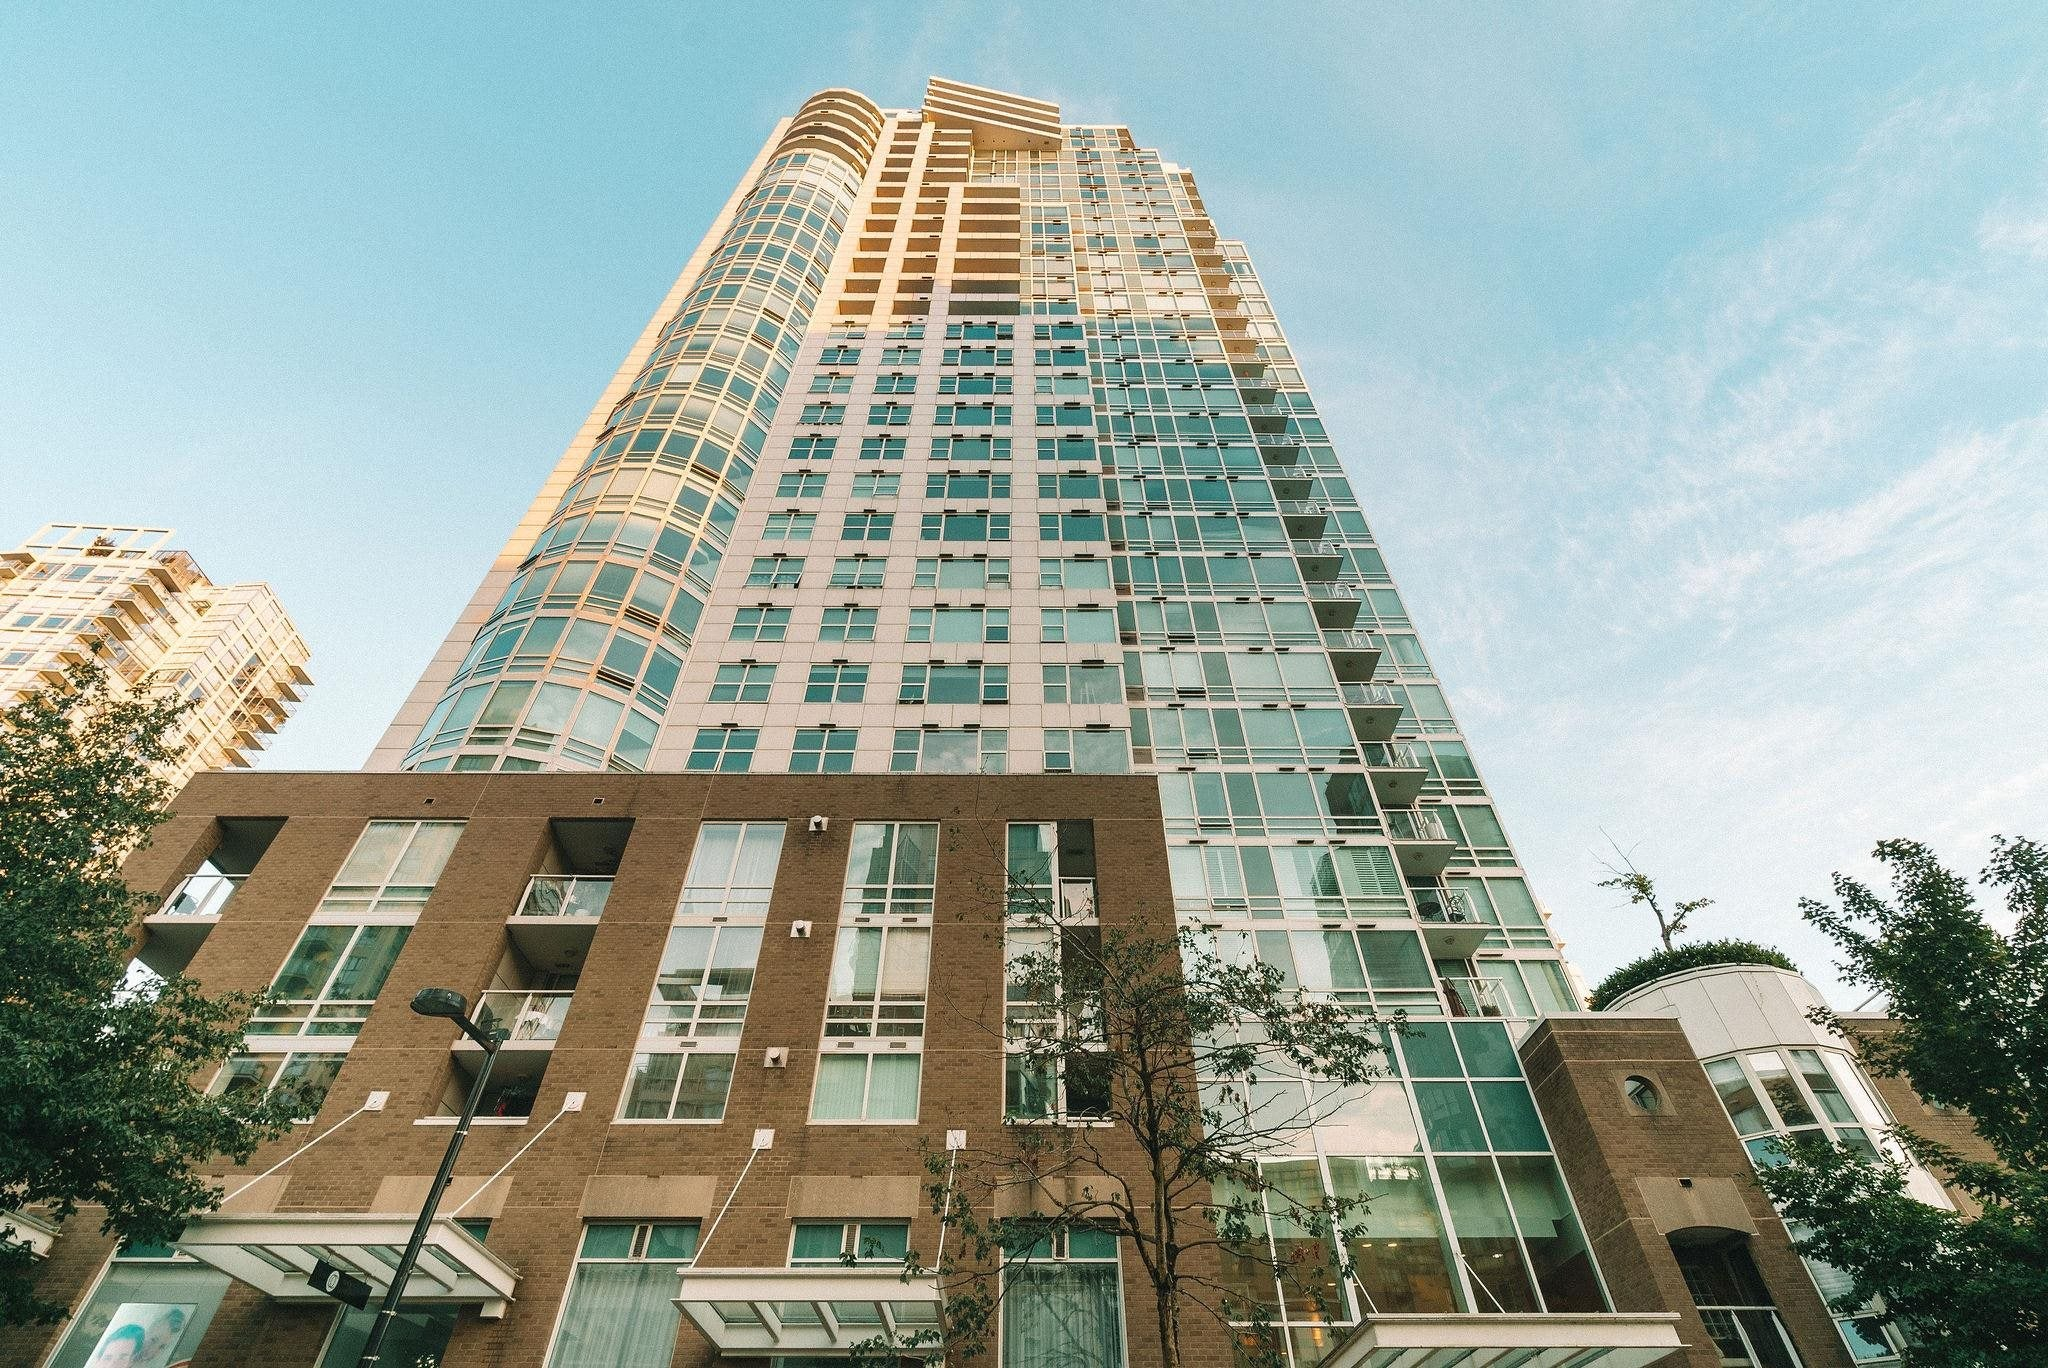 1009 1500 HORNBY STREET - Yaletown Apartment/Condo for sale, 2 Bedrooms (R2617441) - #1